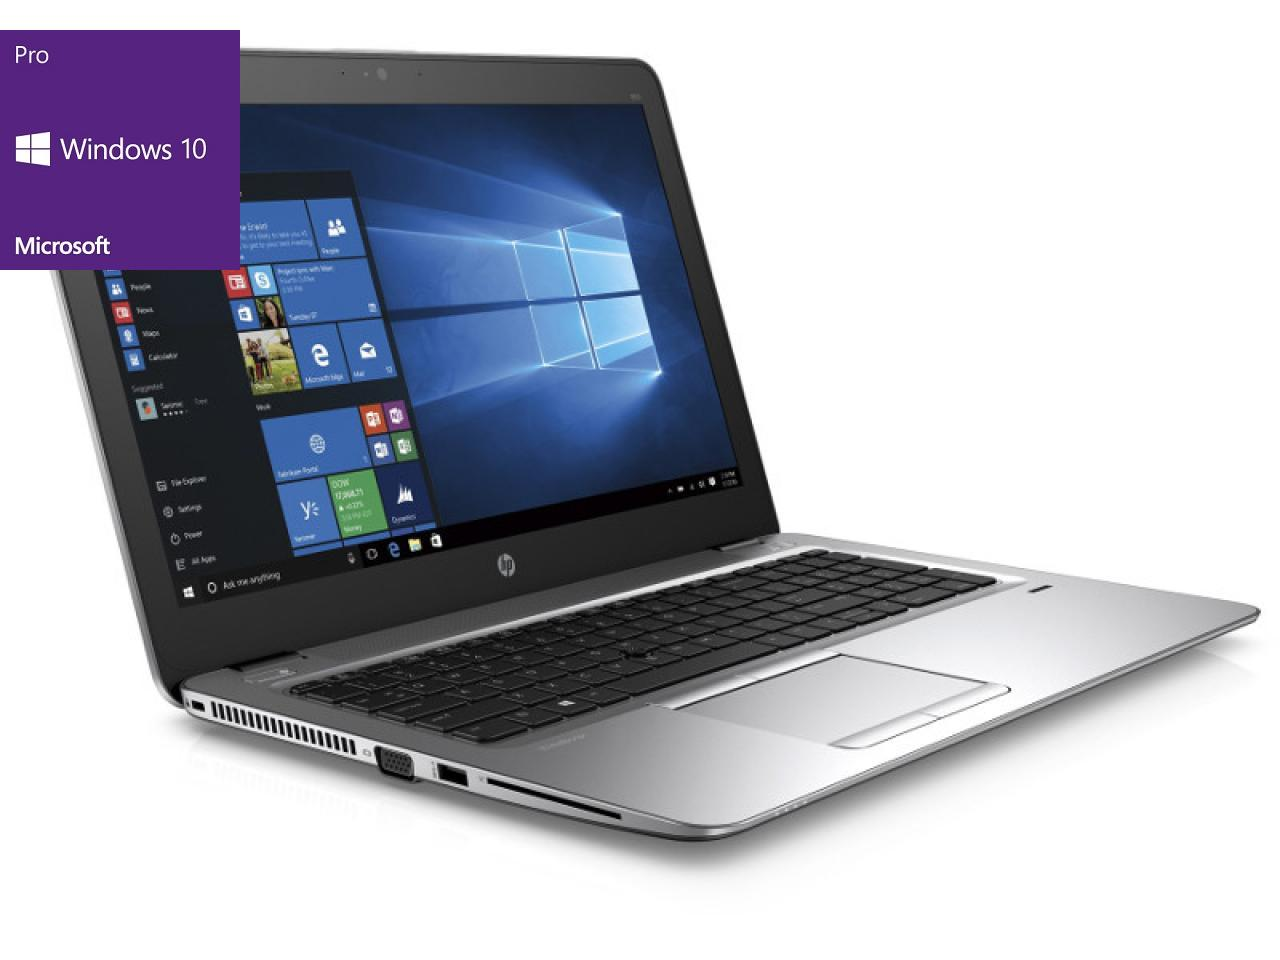 Hewlett Packard EliteBook 850 G3  - shop.bb-net.de